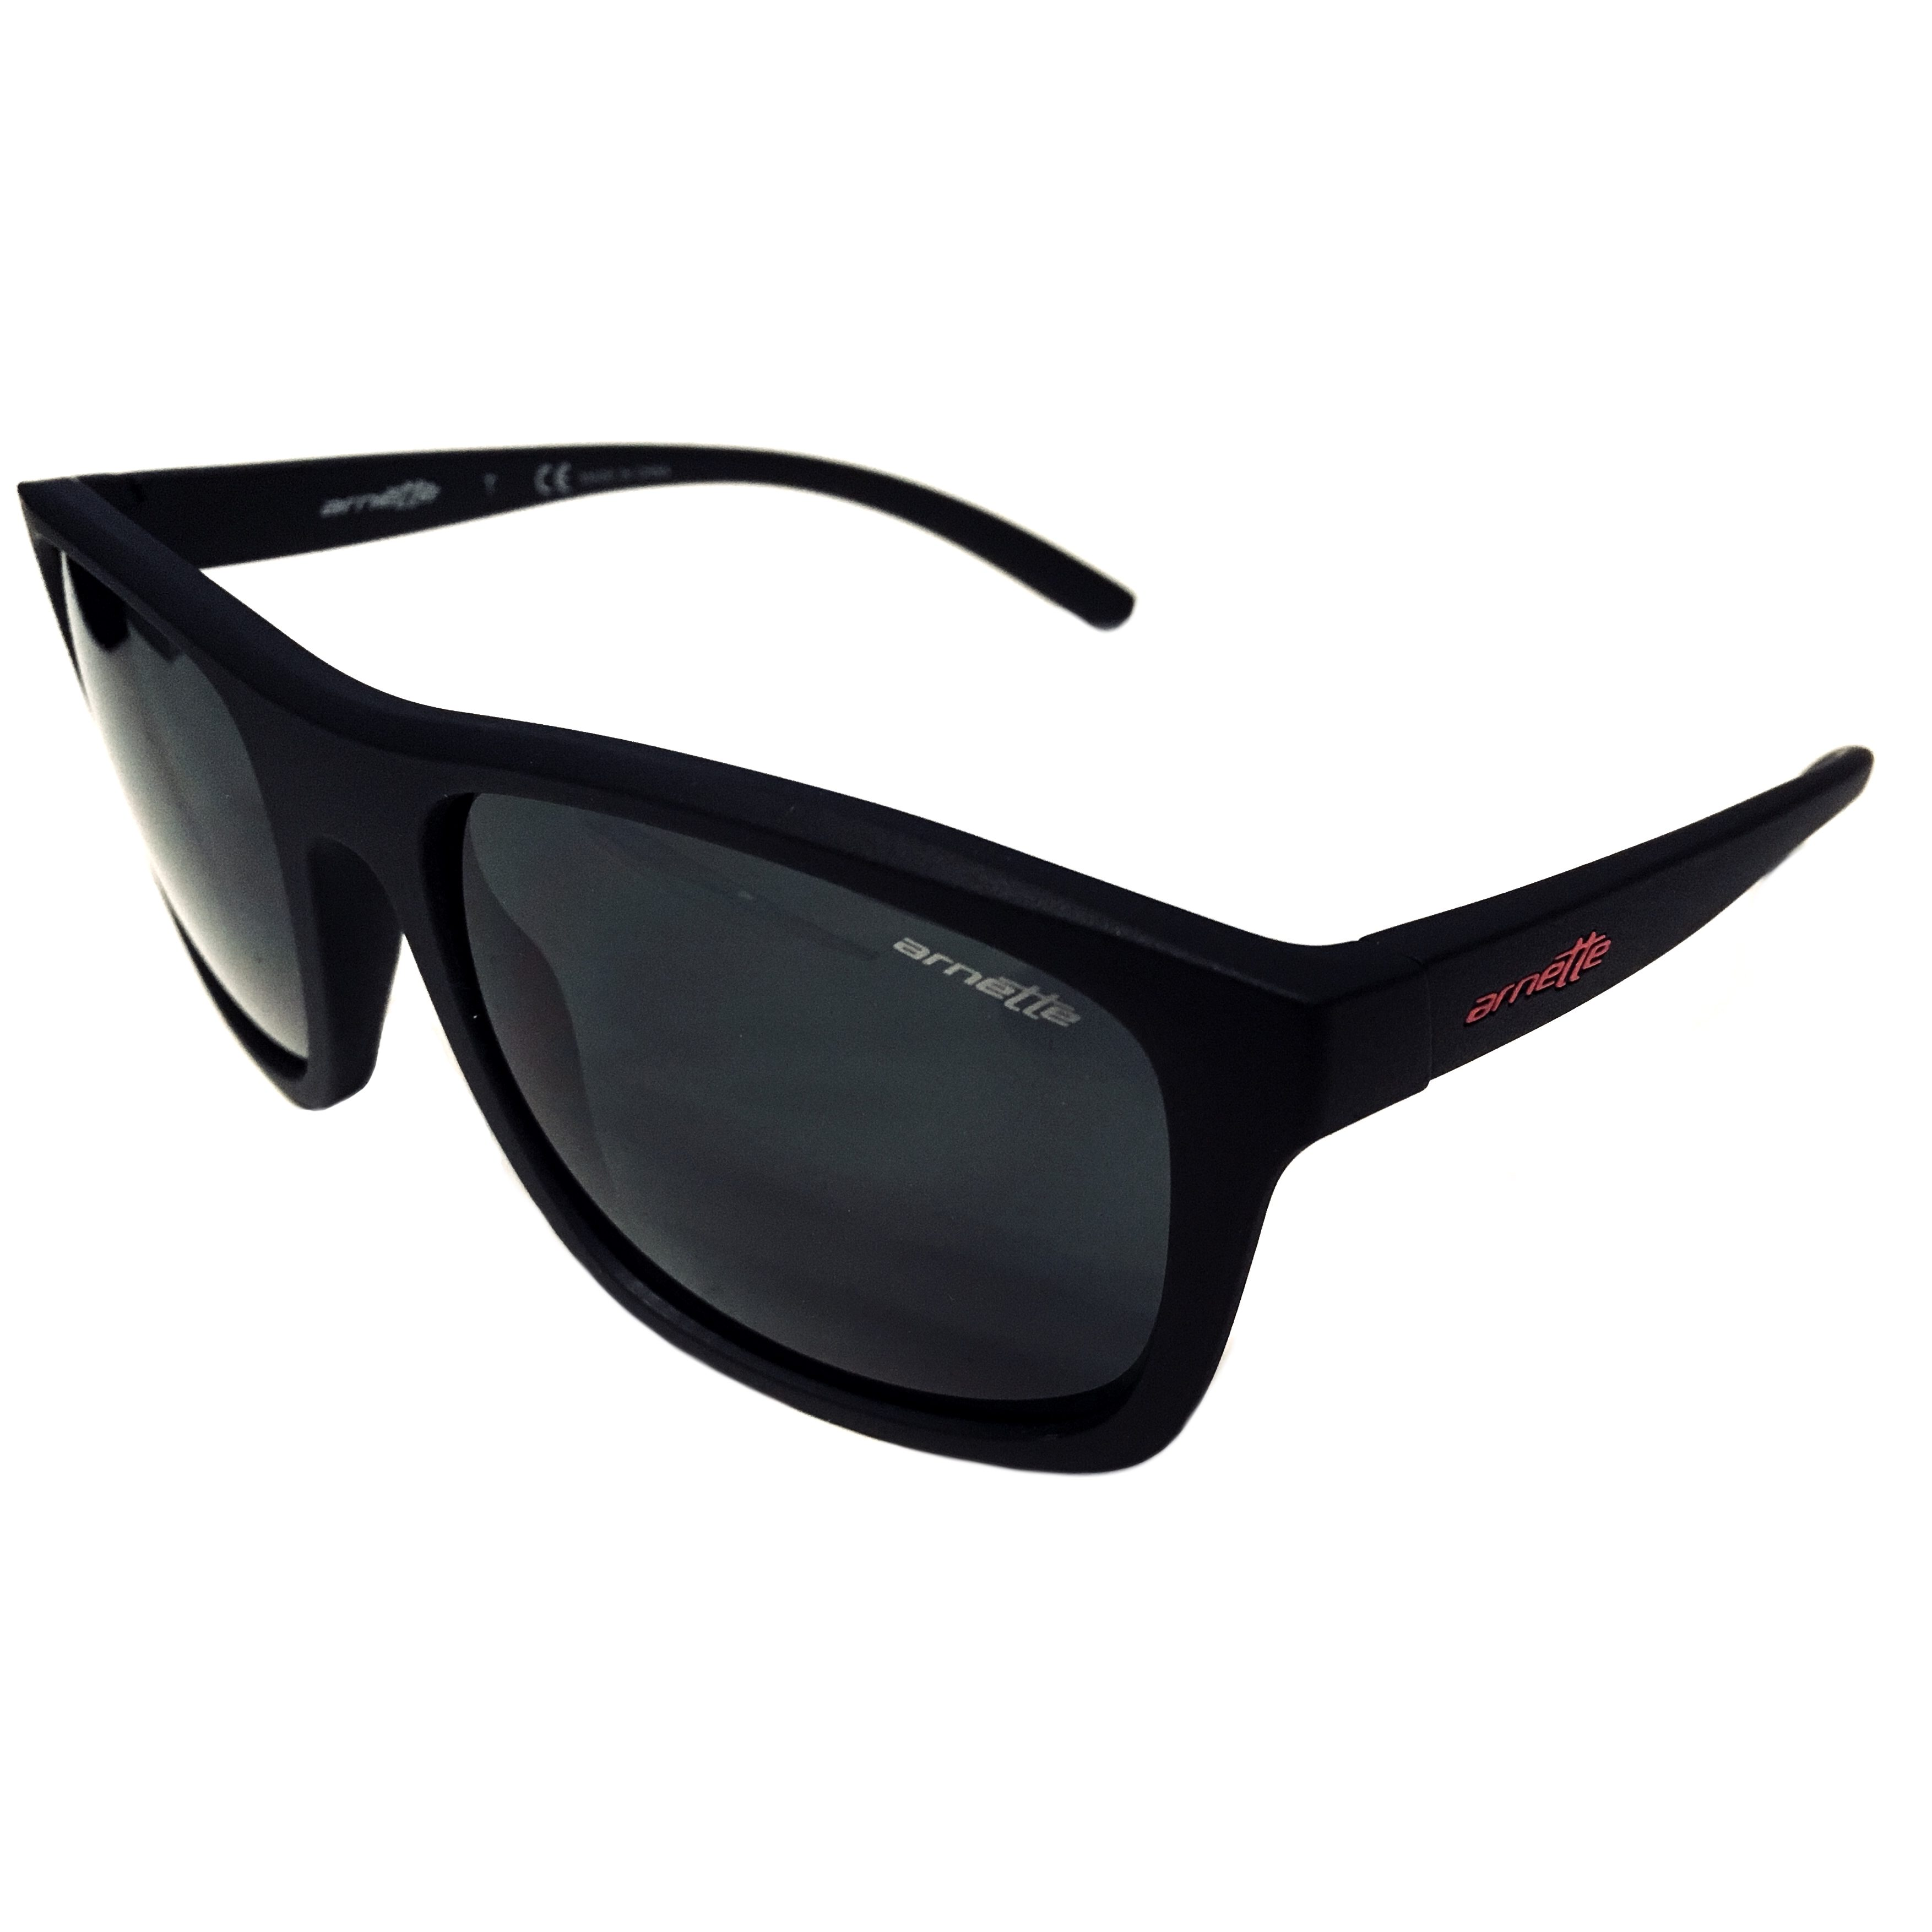 e709e320bf Arnette Complementary Sunglasses - Matte Black - Dark Grey AN4233 01 87